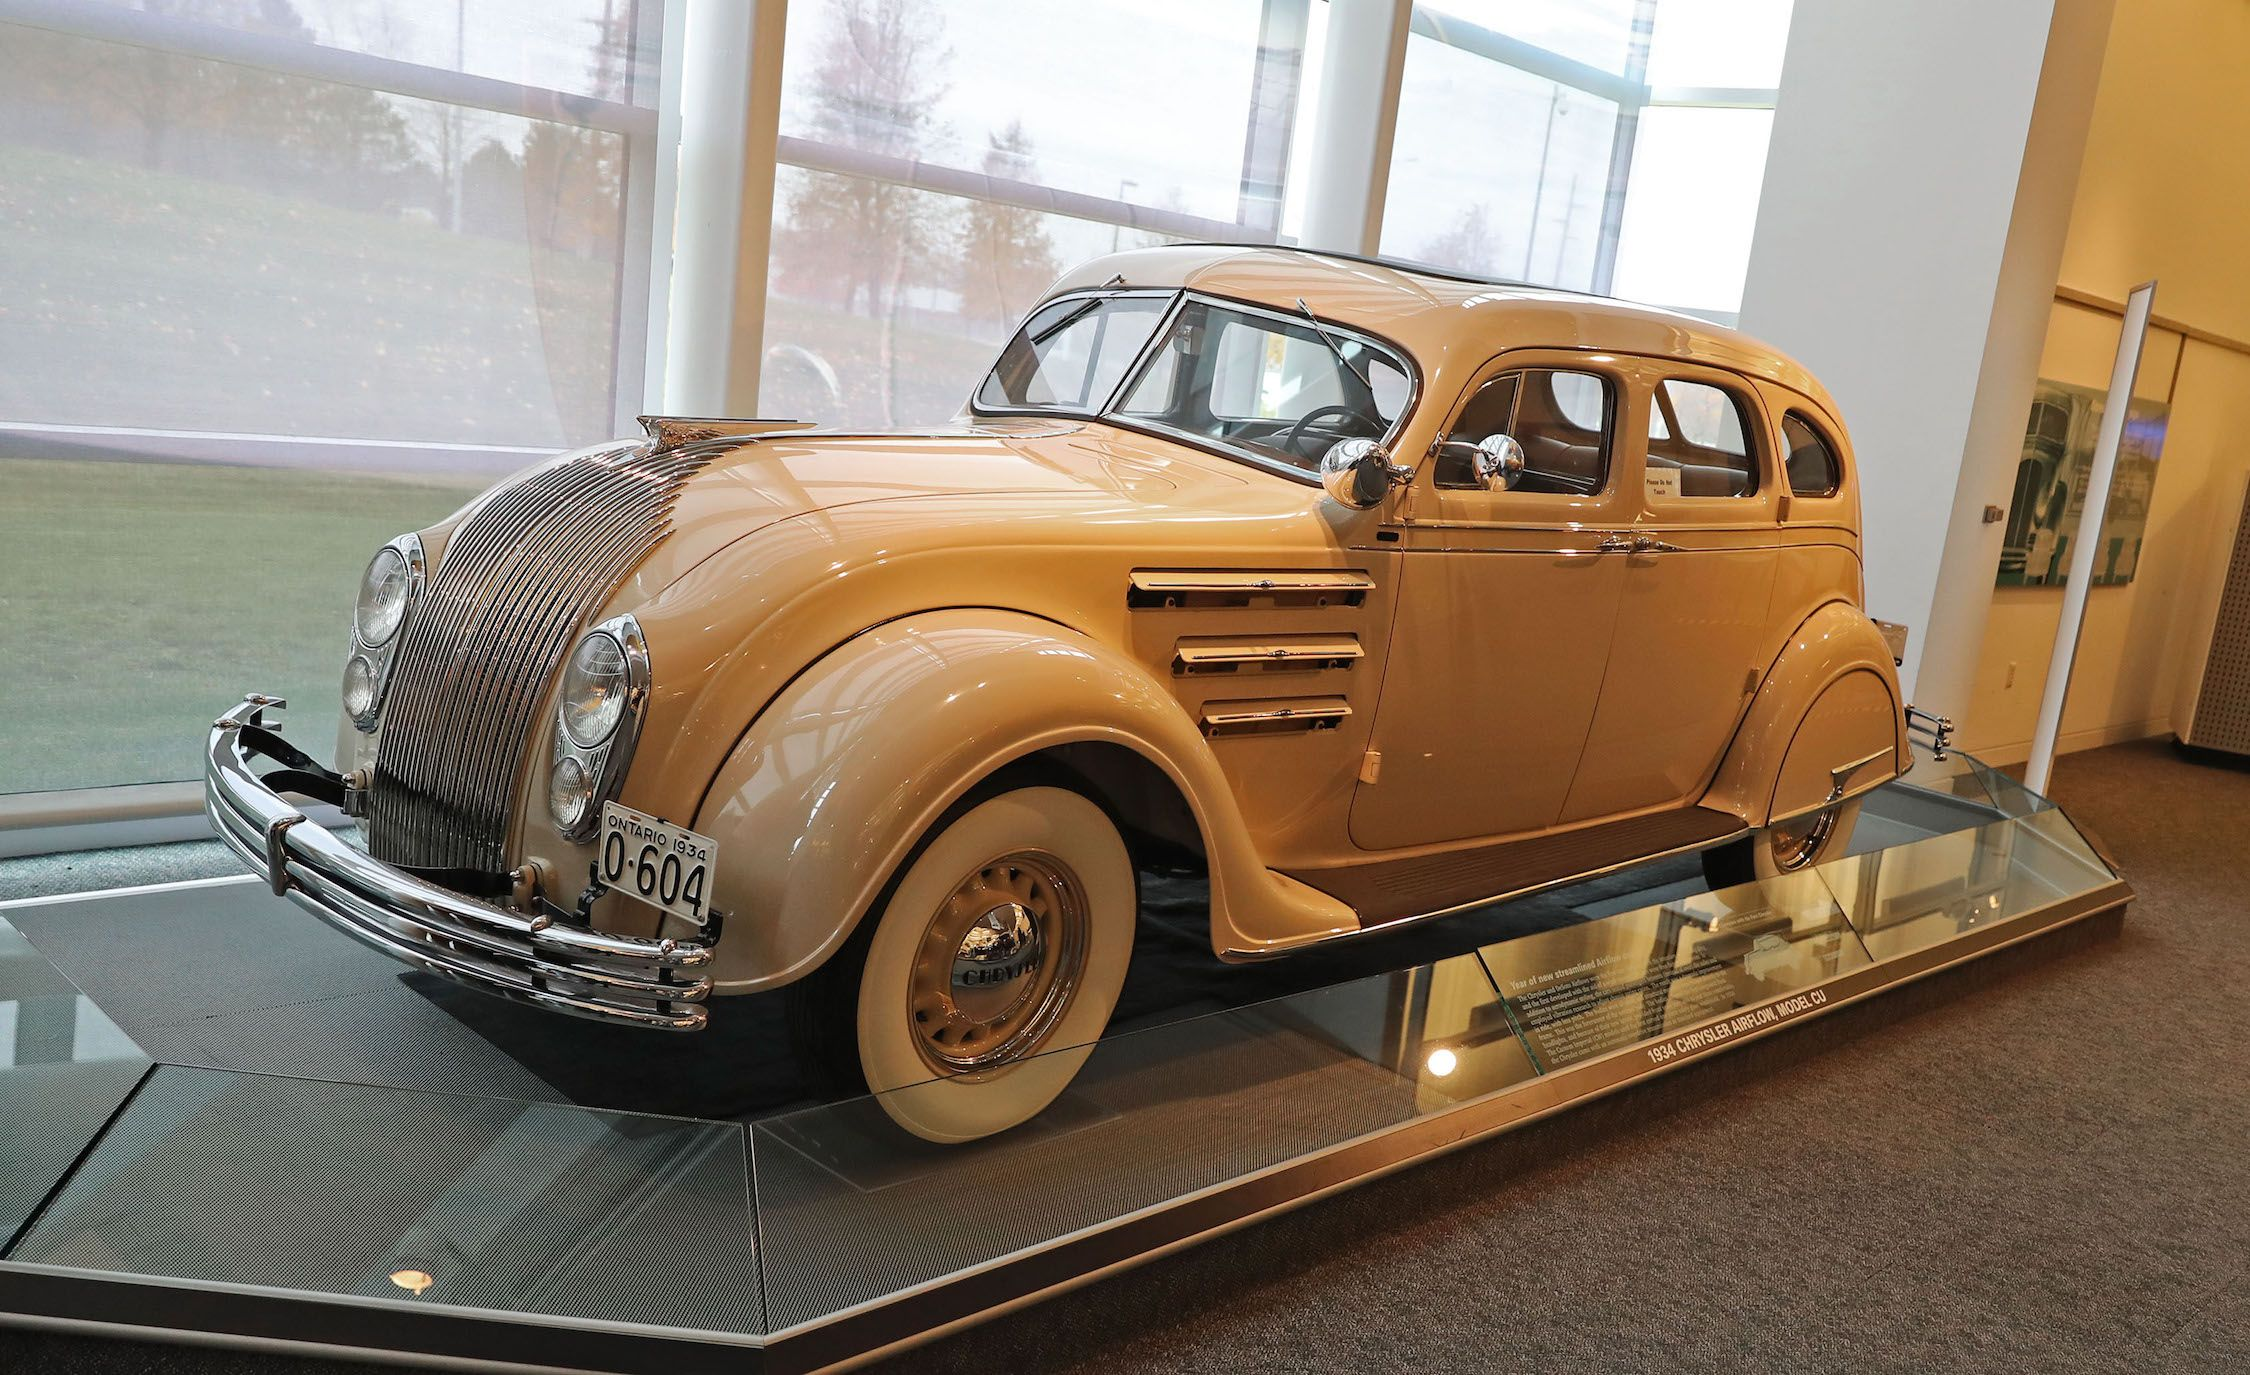 The Chrysler Museum In Pictures Gone But Not Forgotten 1950 To 1955 Plymouth Cars